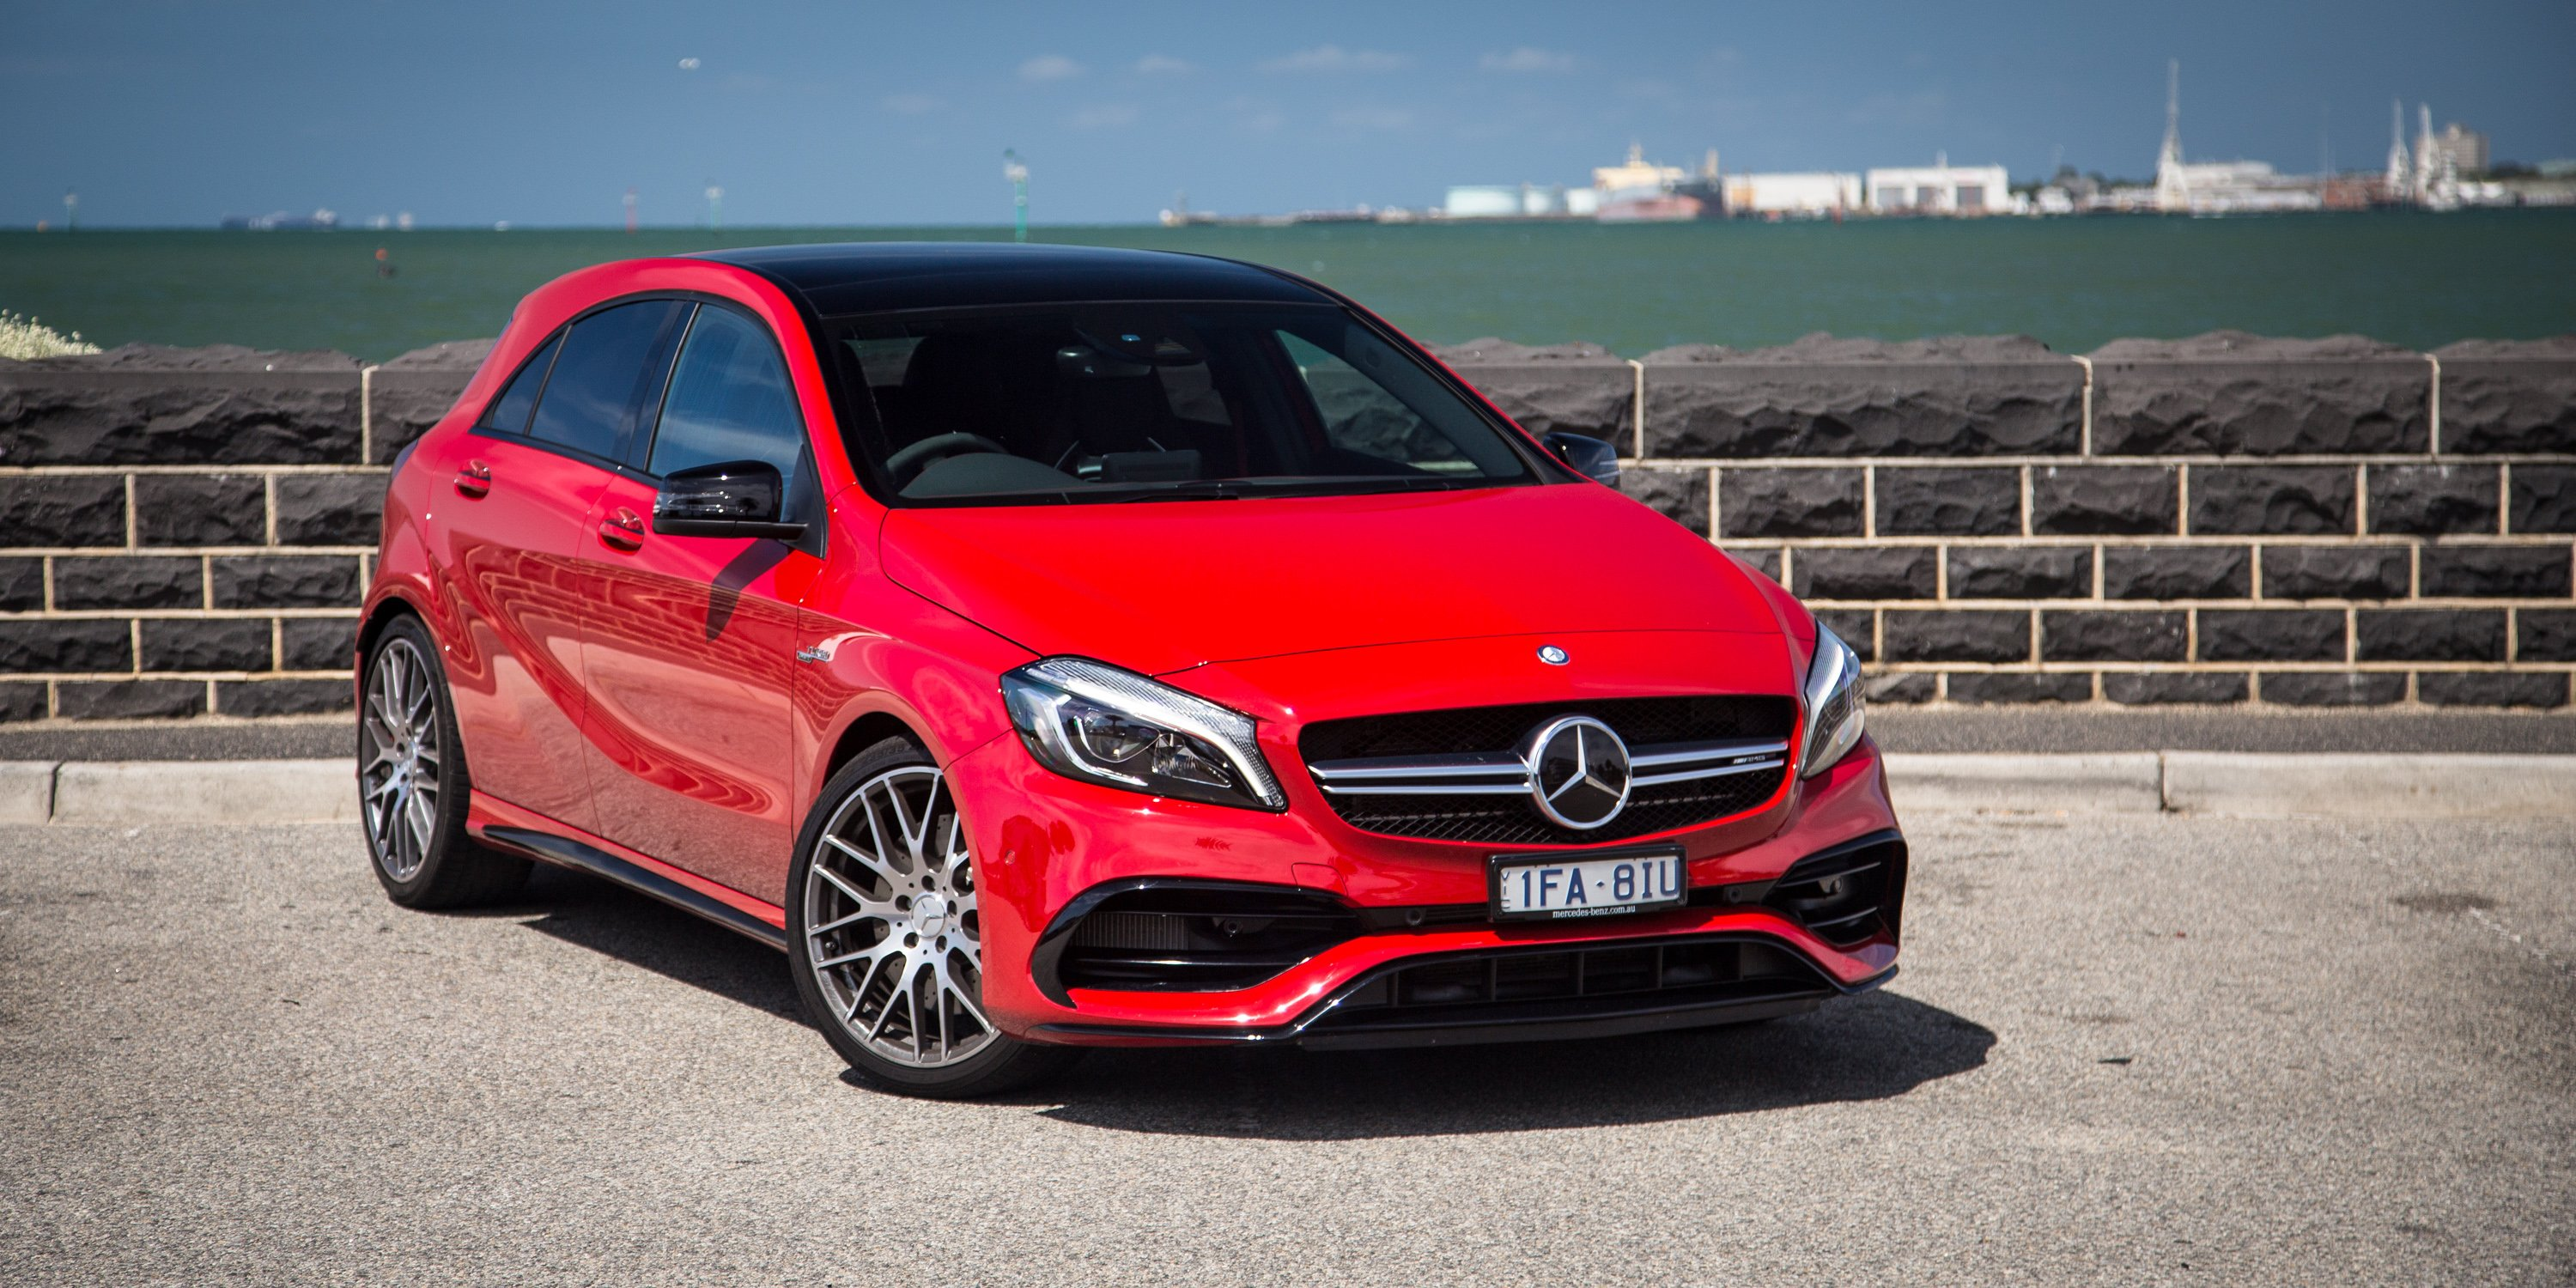 2016 mercedes amg a45 review photos caradvice for Mercedes benz a45 amg